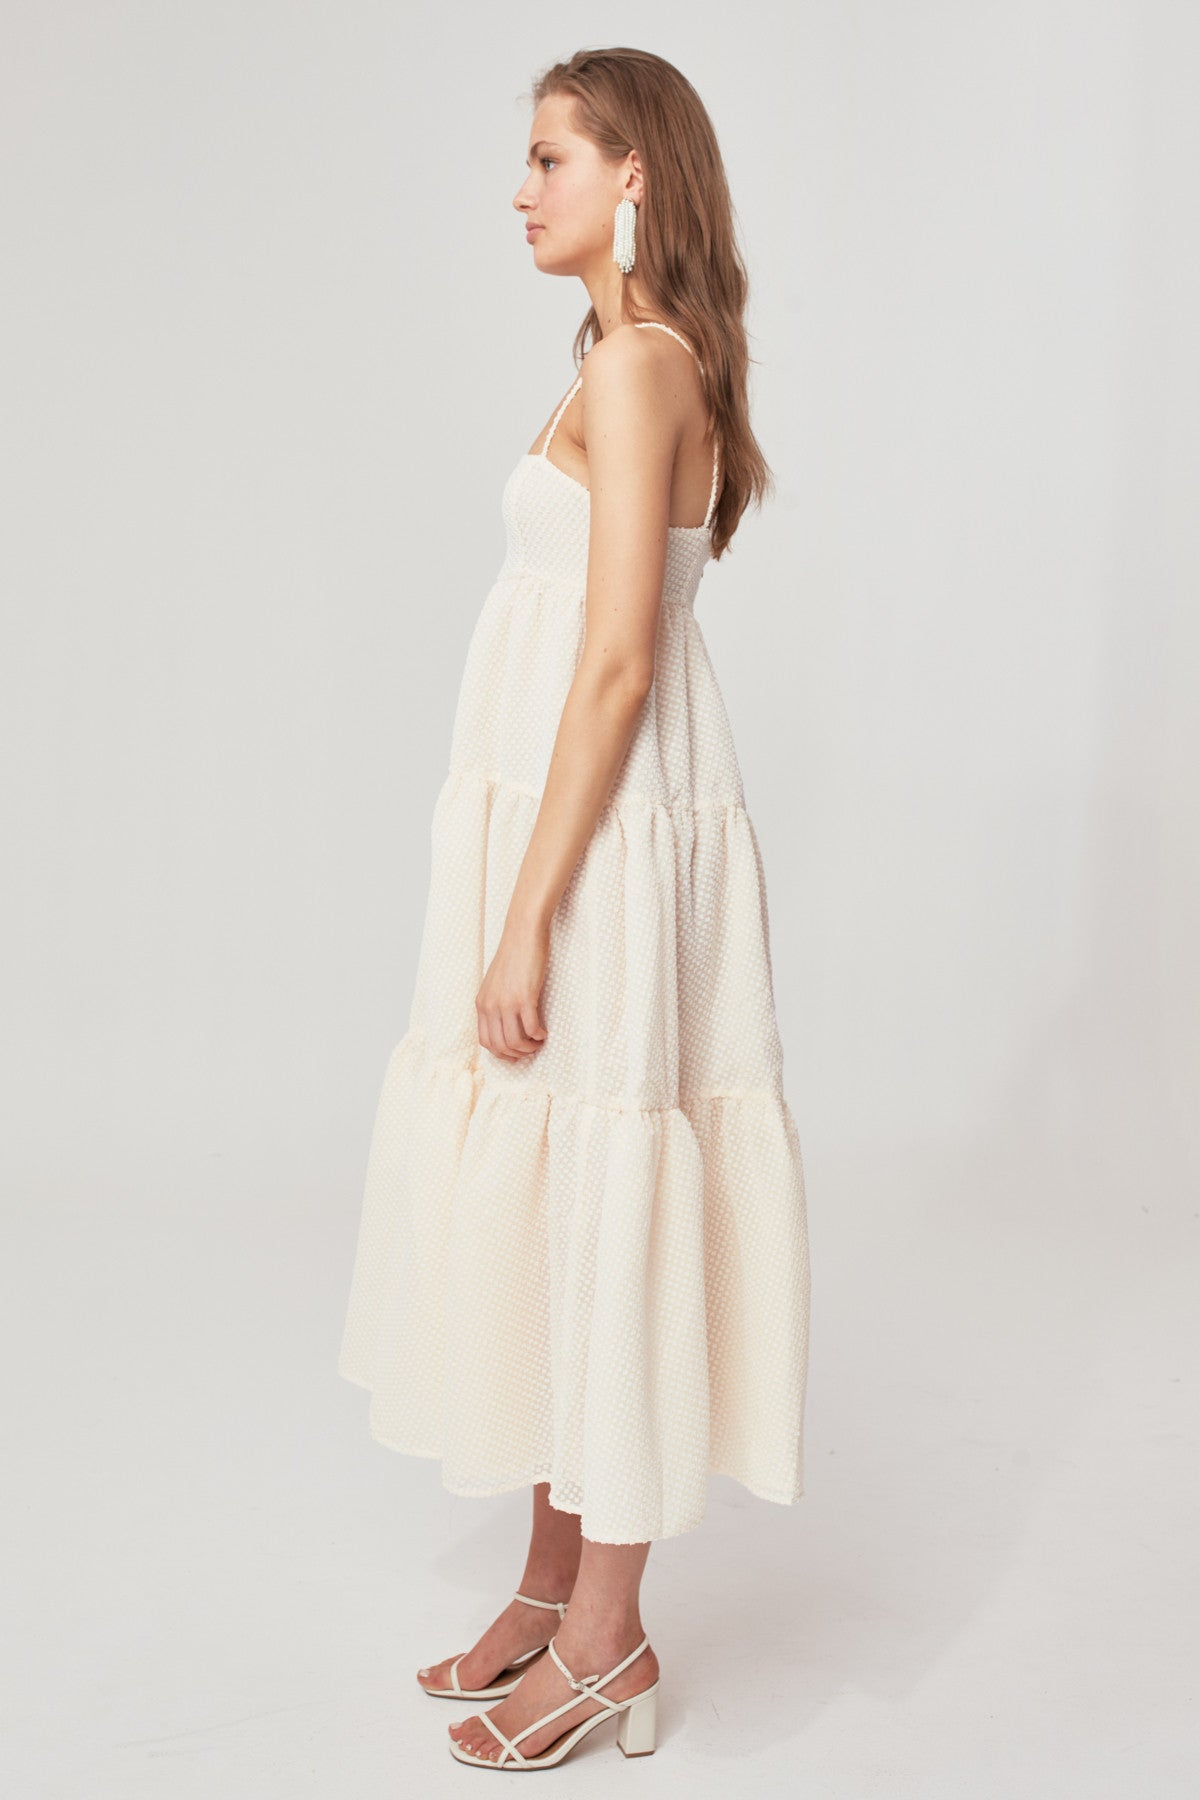 BREAK IN TWO MAXI DRESS cream w ivory